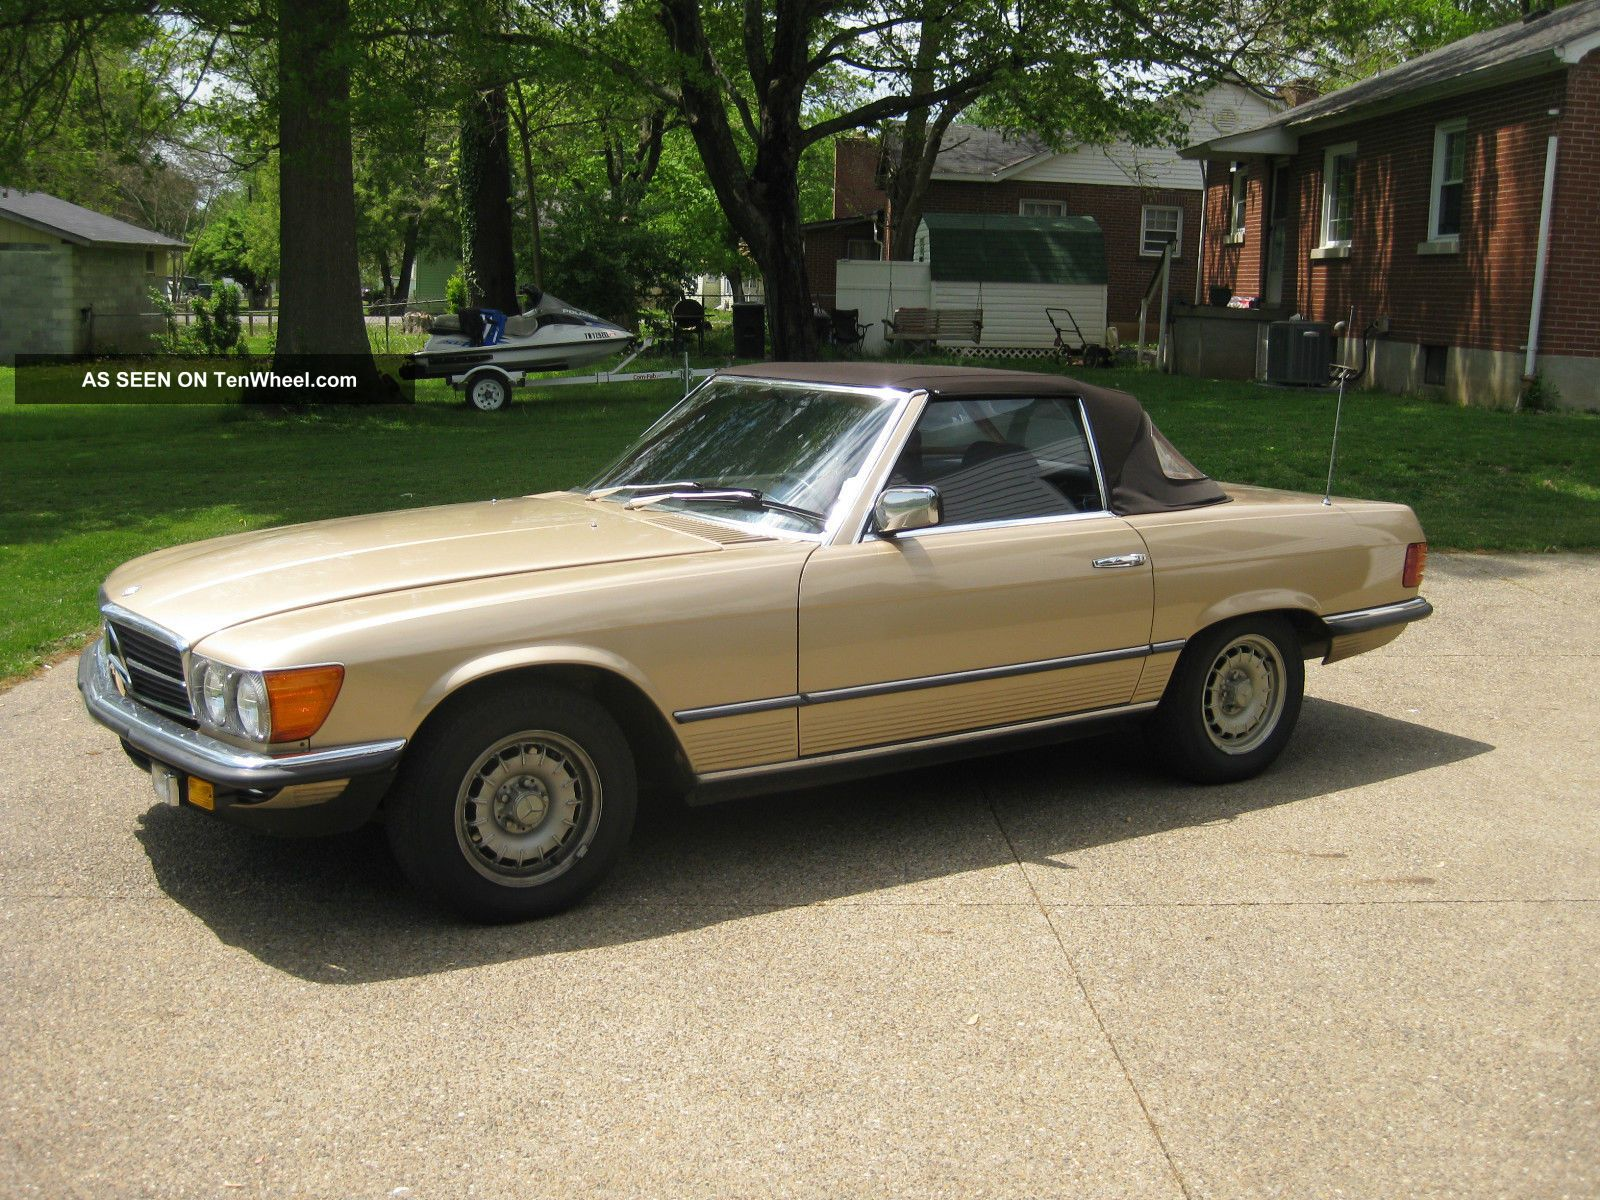 1982 Gold 2 - Door 280 Sl With Six Cylinder Five Speed Manual Trans.  - SL-Class photo